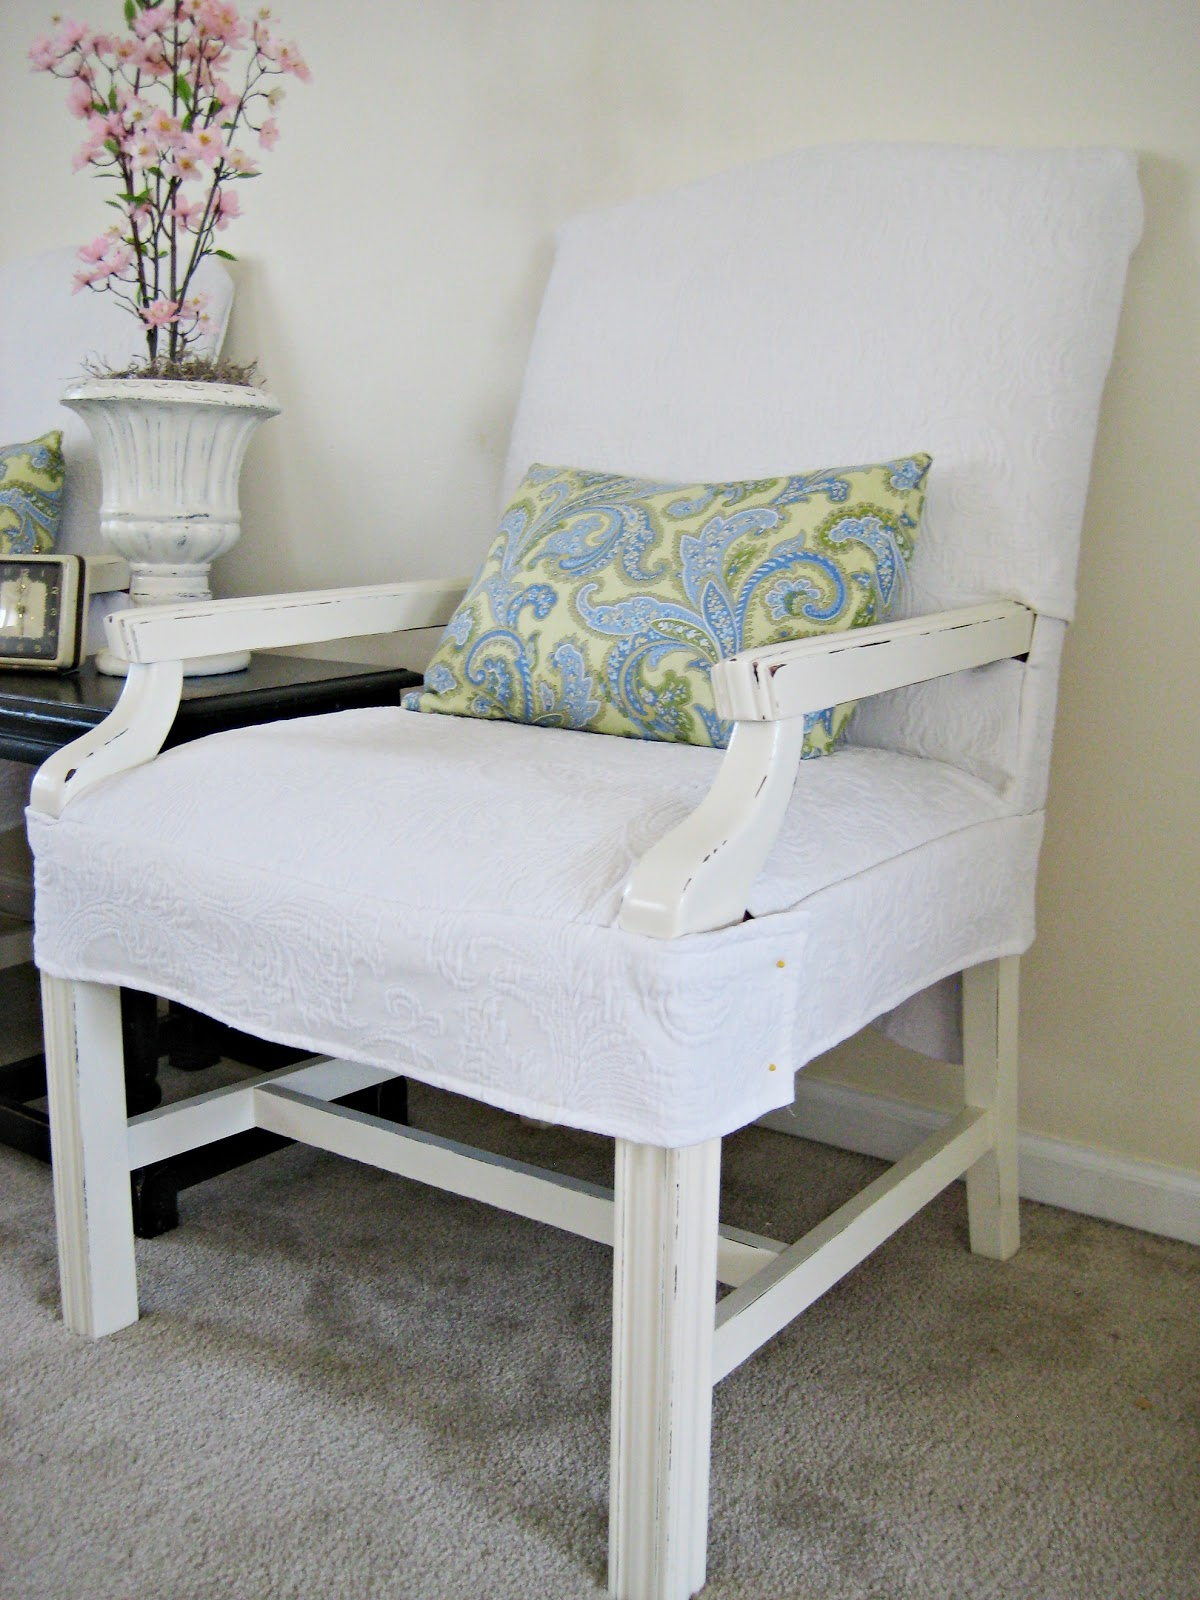 How To Slipcover A Chair With Arms Dining Seat Cover Material Happy At Home Slipcovered Arm Chairs